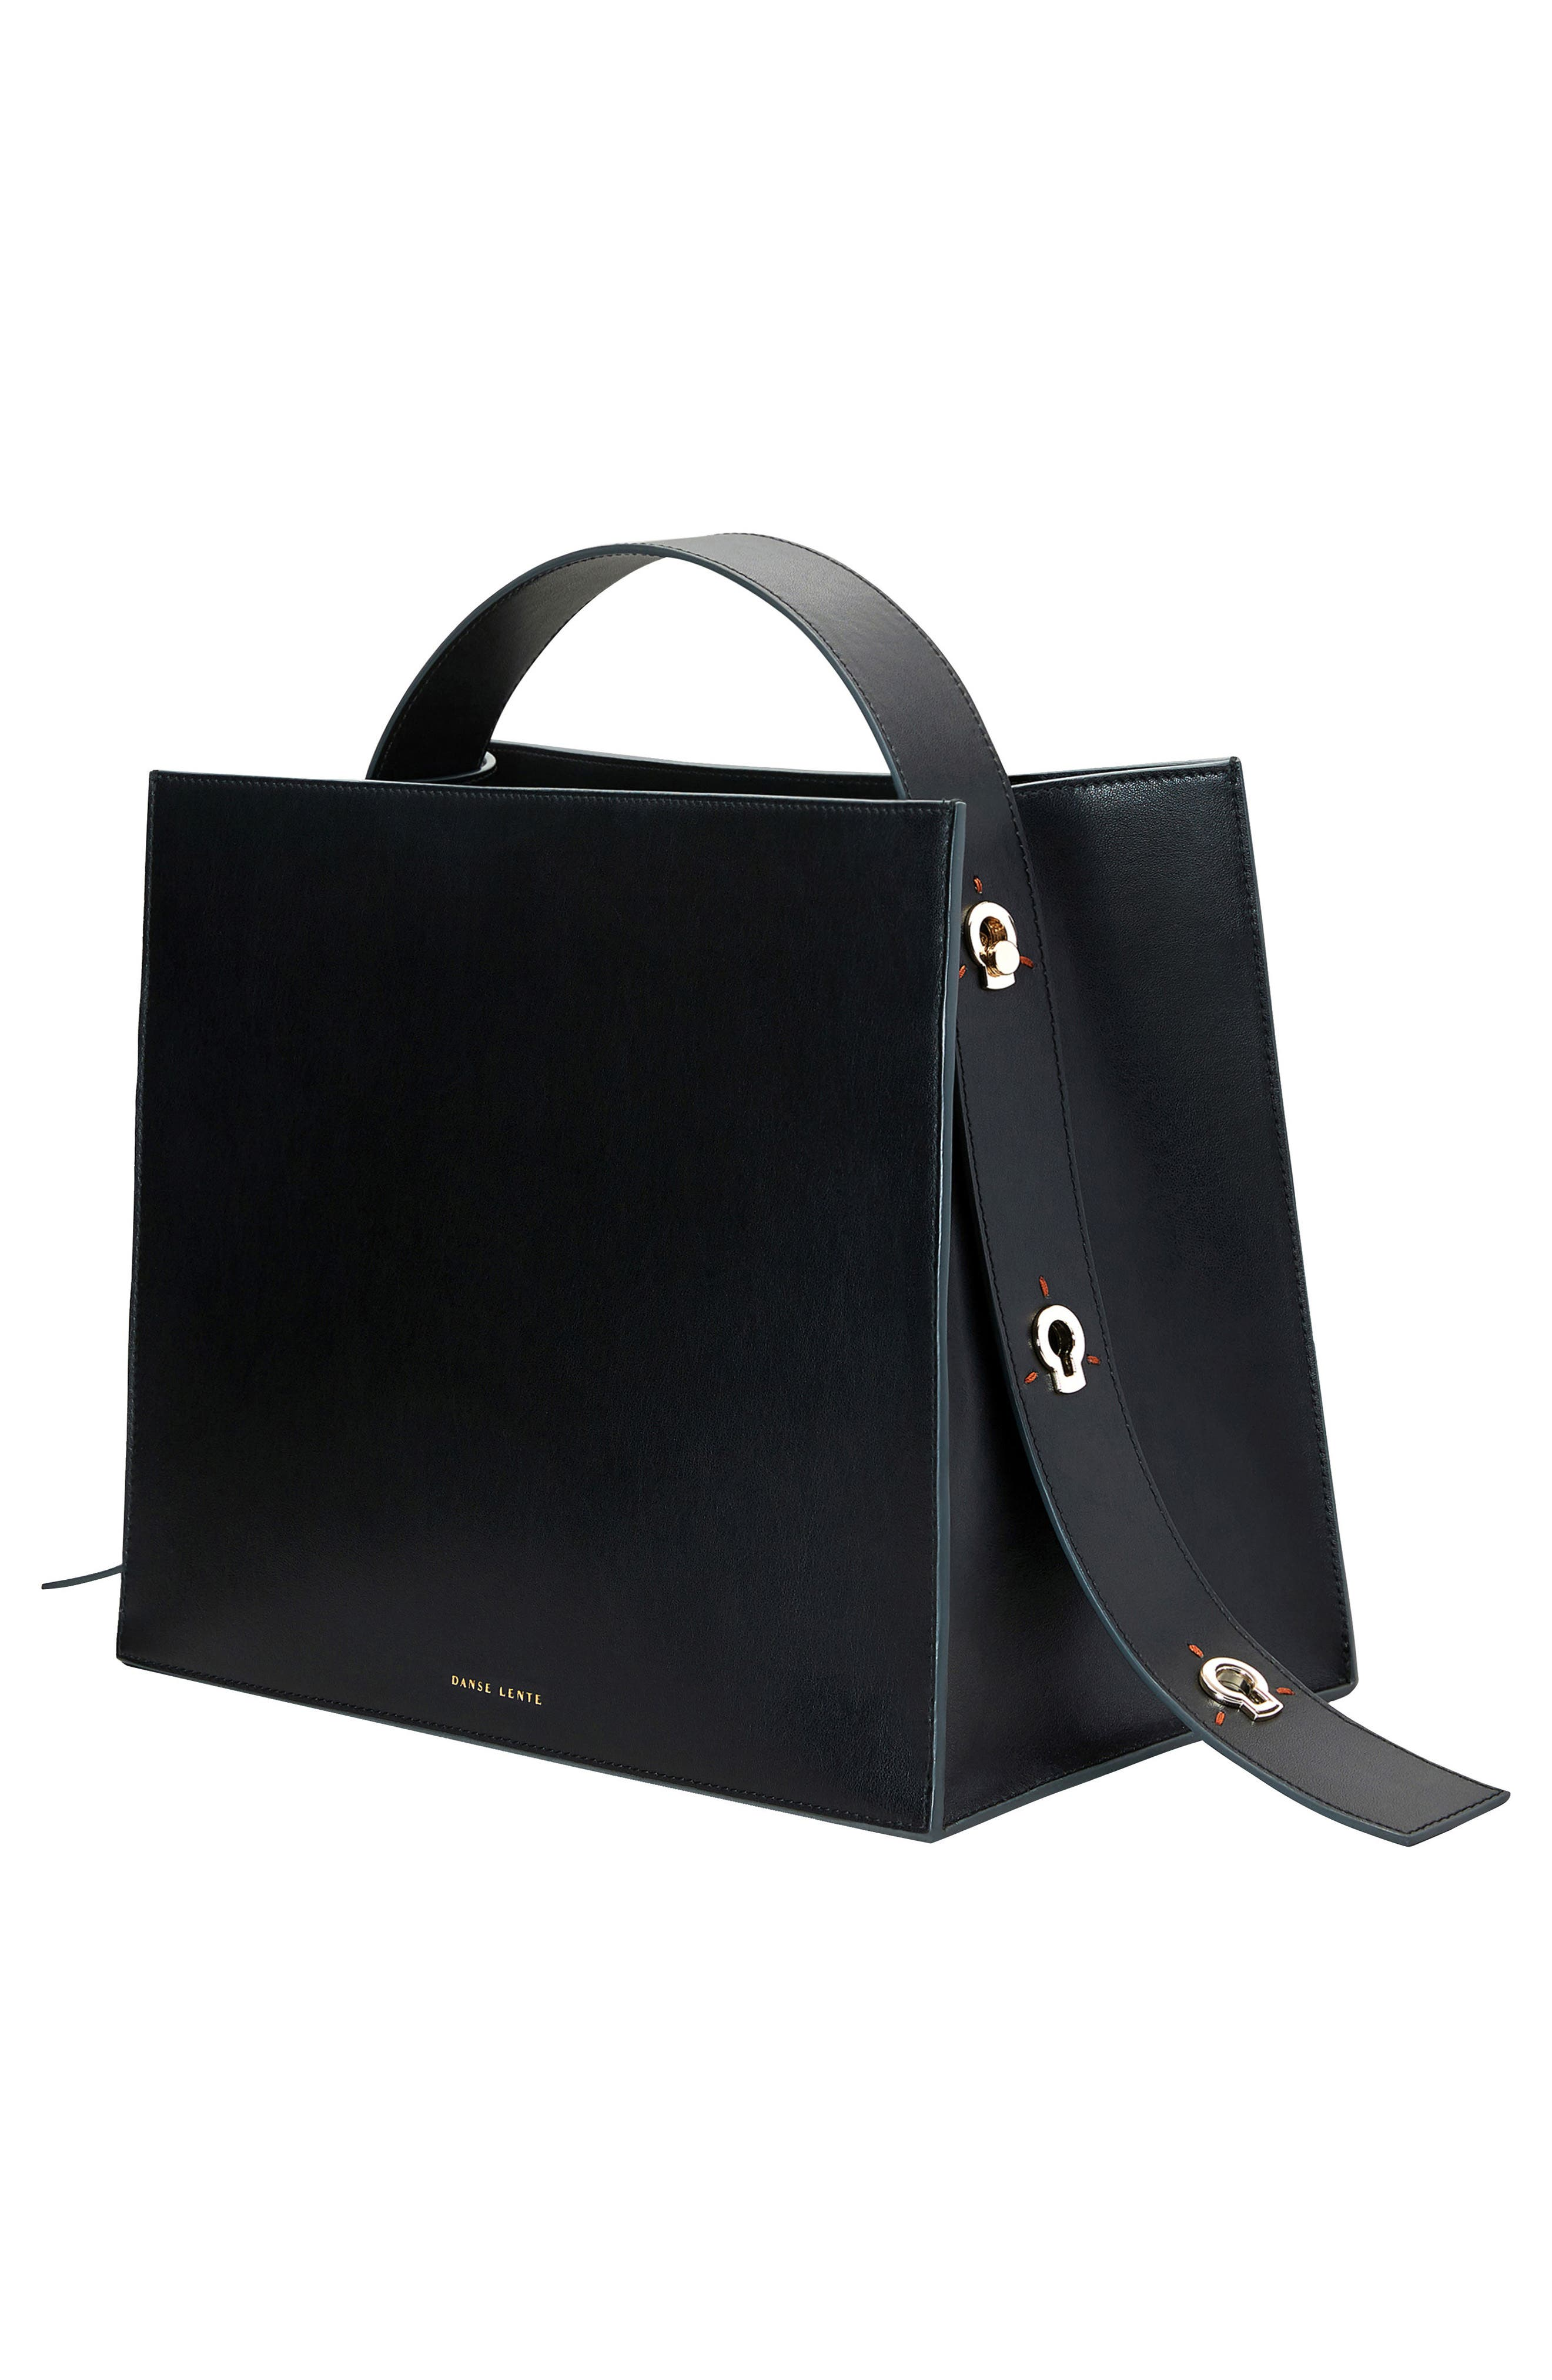 Young Leather Tote Bag,                             Alternate thumbnail 10, color,                             BLACK